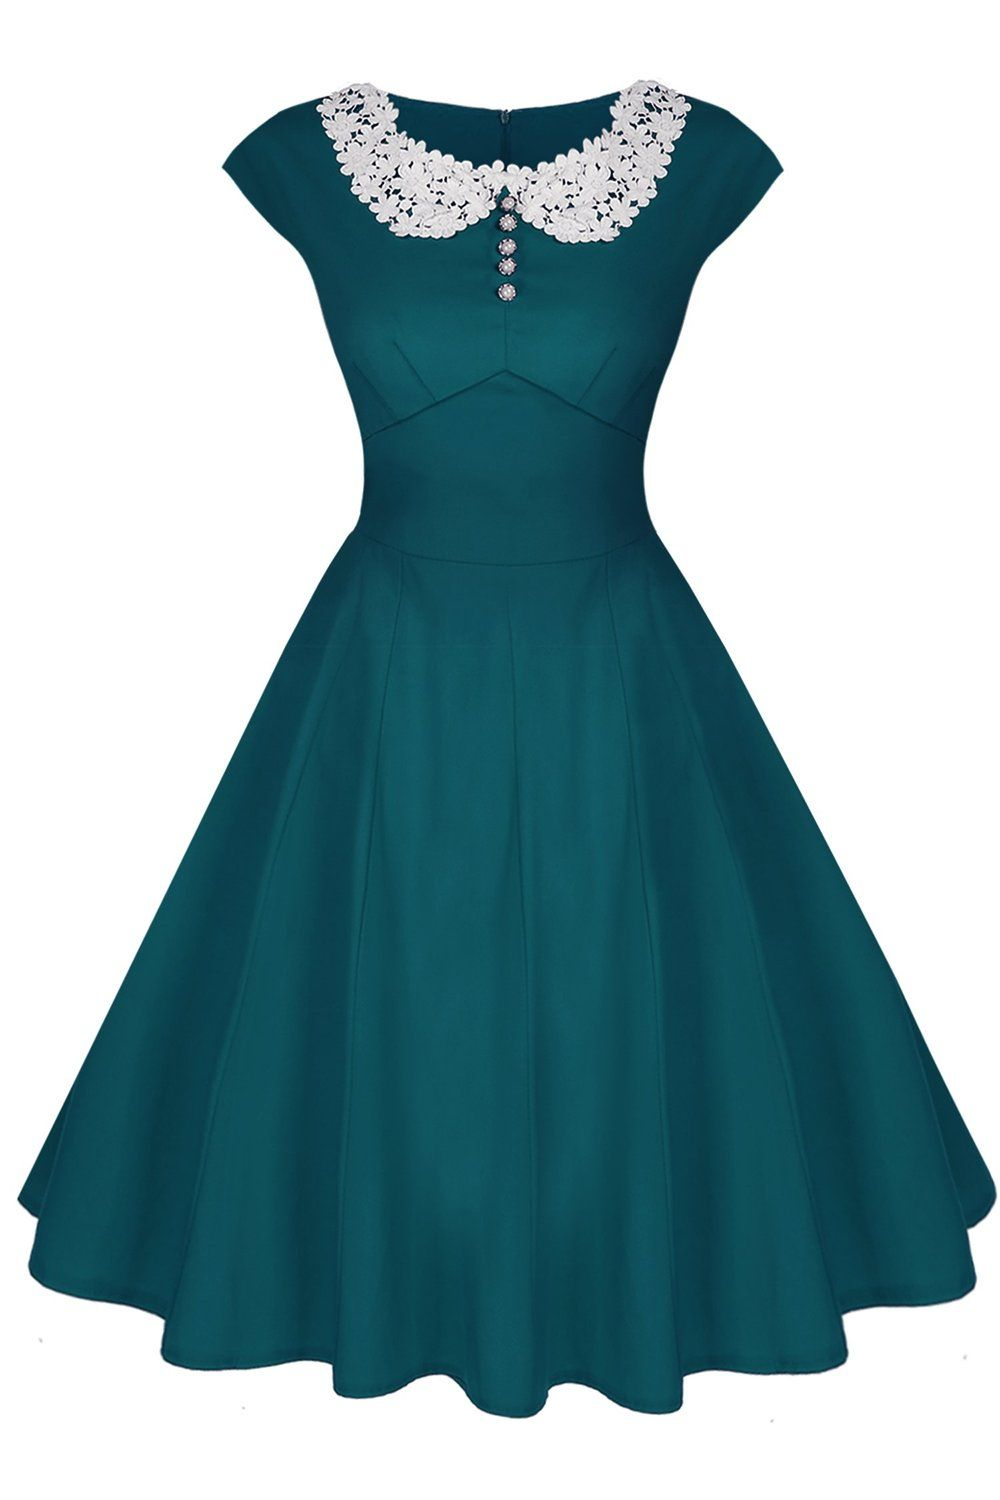 A Synopsis Of Vintage Dresses